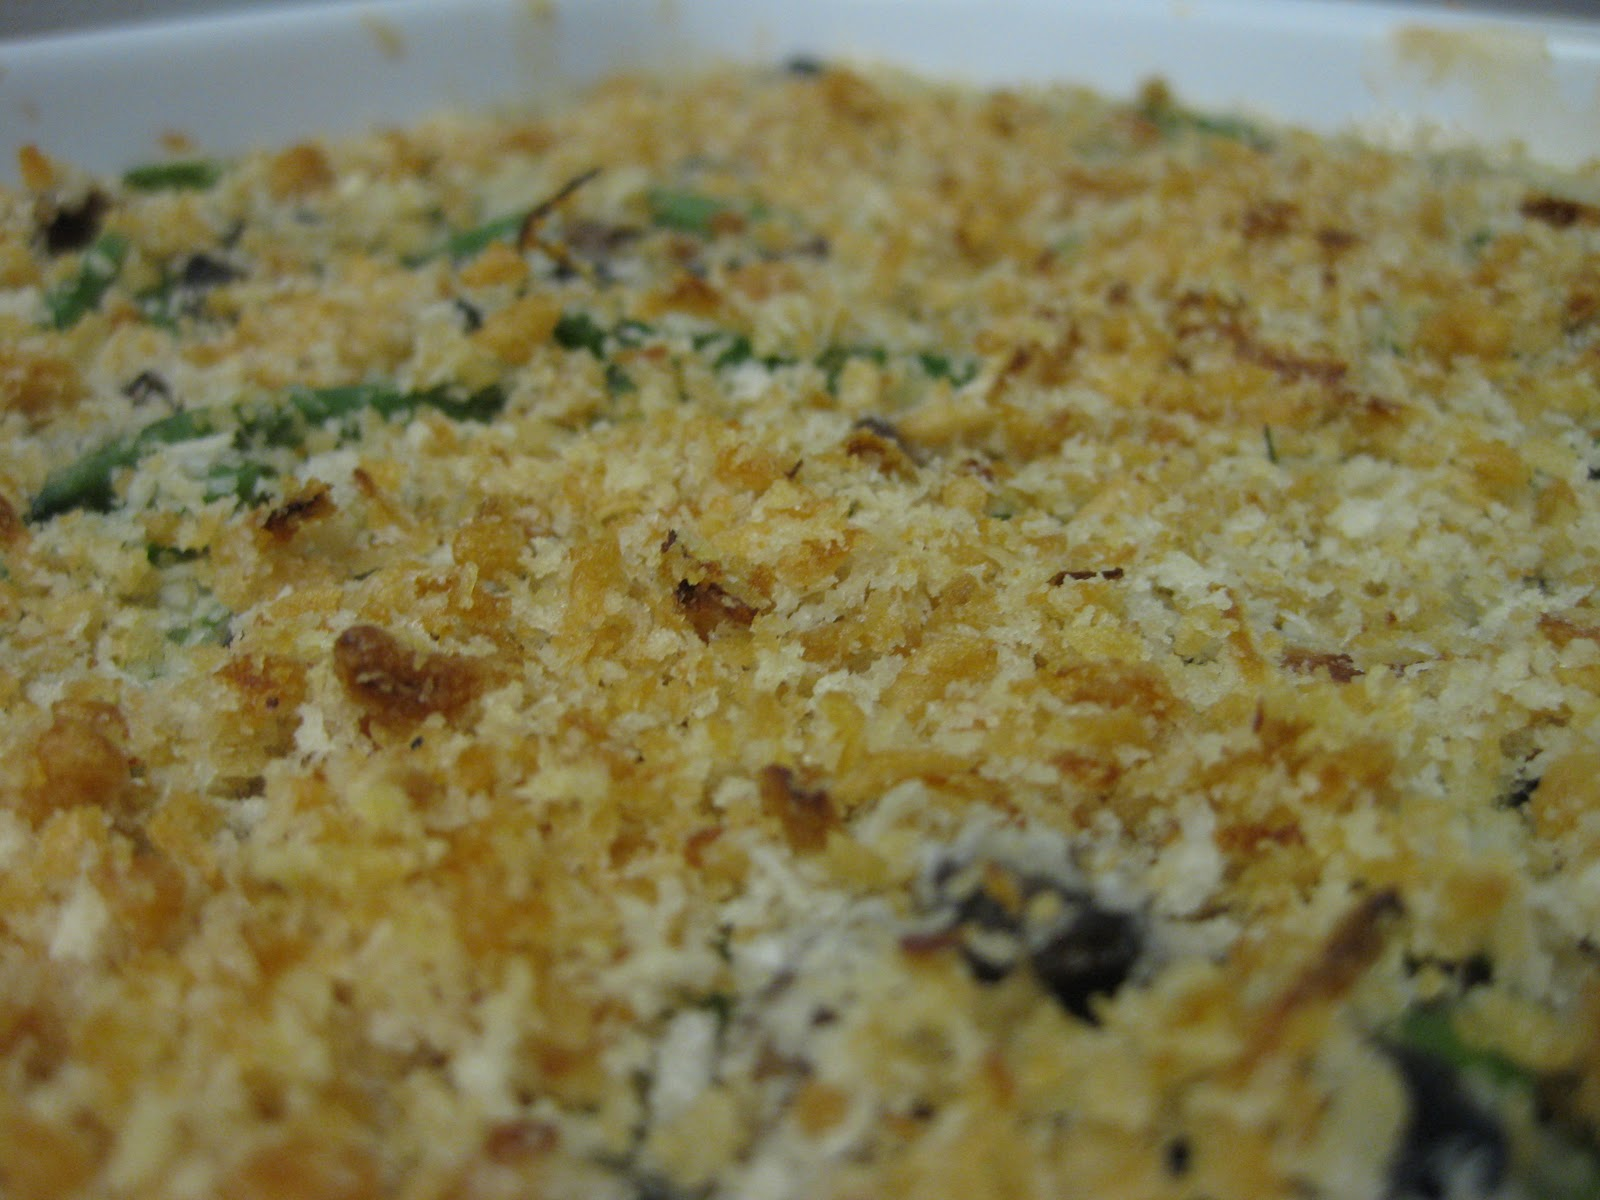 thanksgiving green bean and mixed mushroom casserole serves 4 to 6